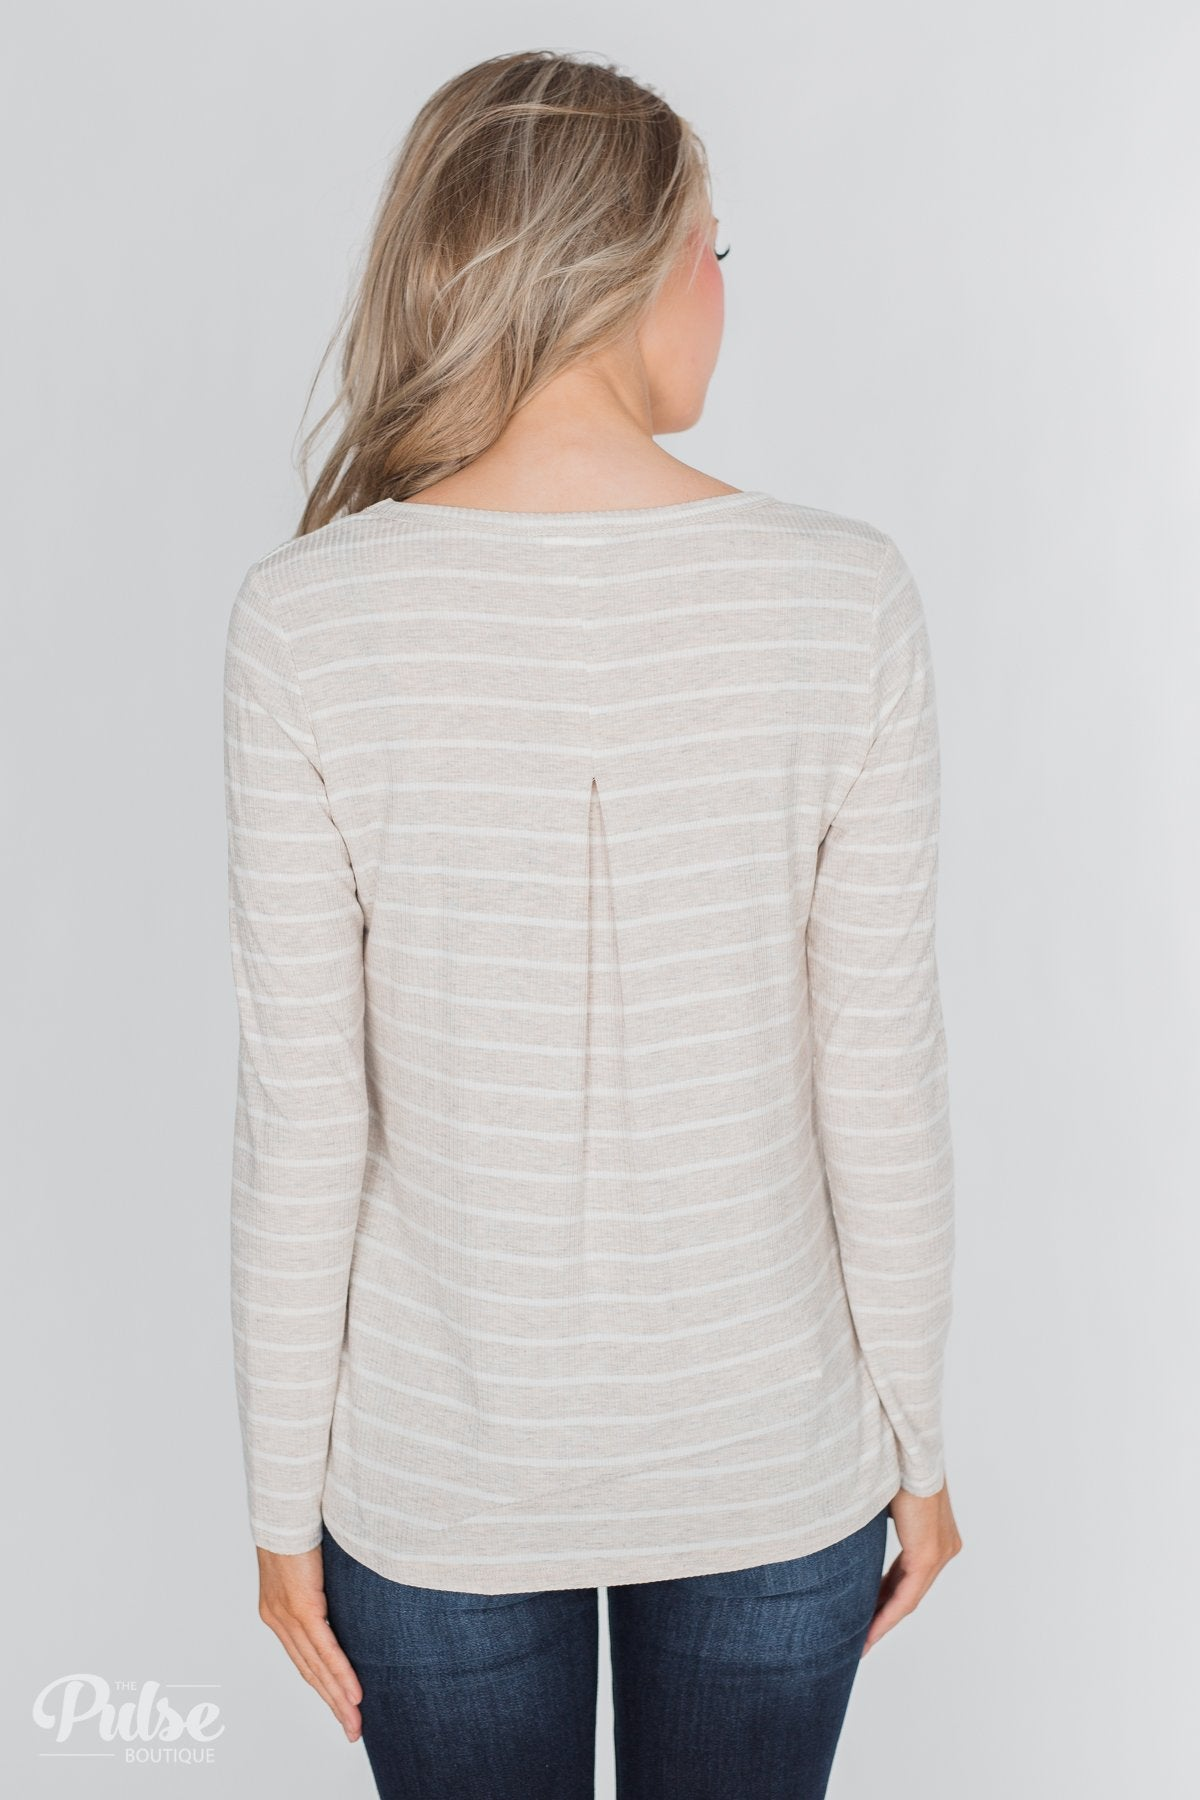 Never Forget You Pleated Striped Top- Oatmeal